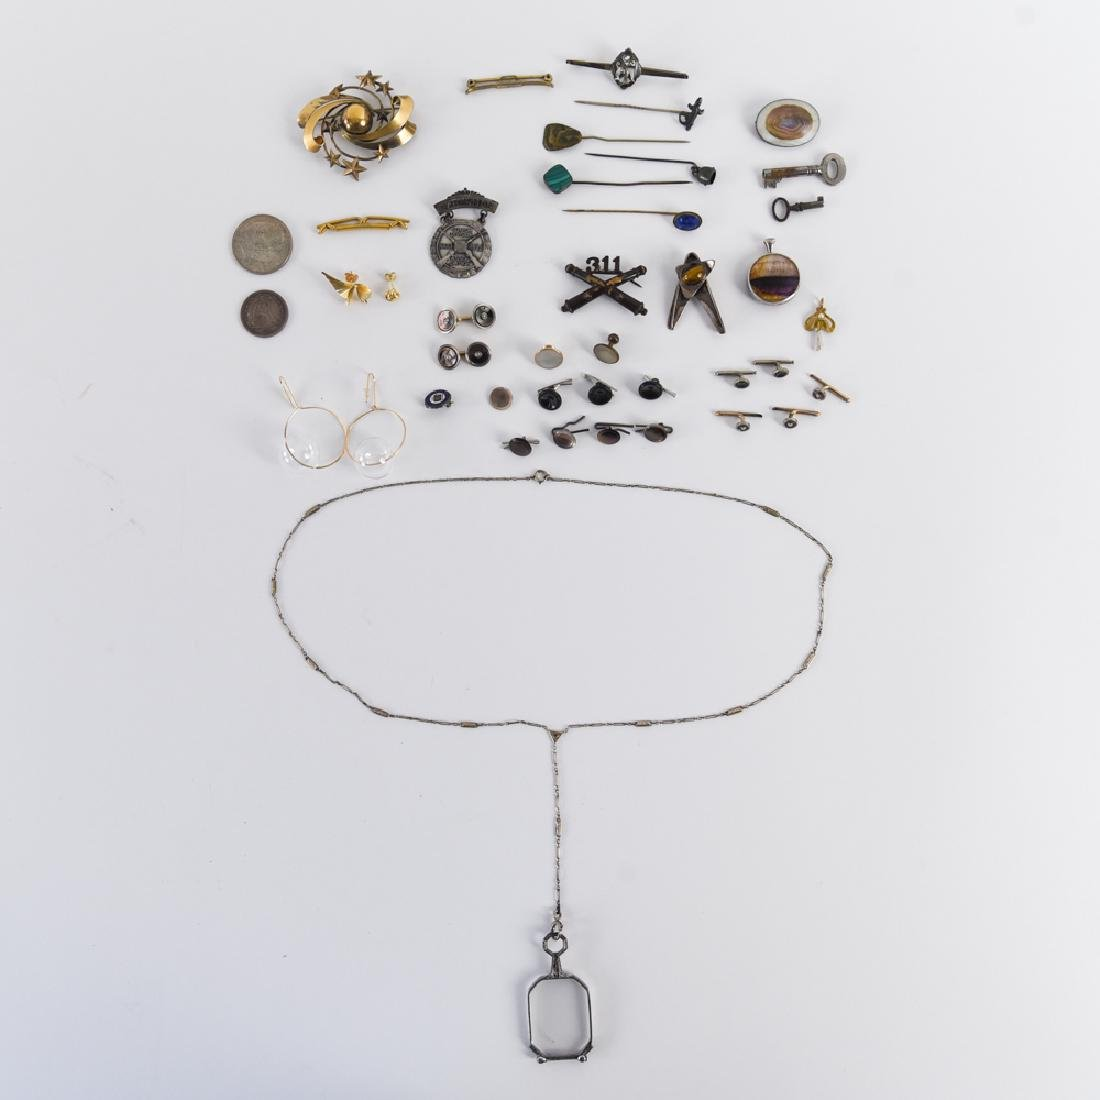 GROUPING OF ANTIQUE AND VINTAGE JEWELRY